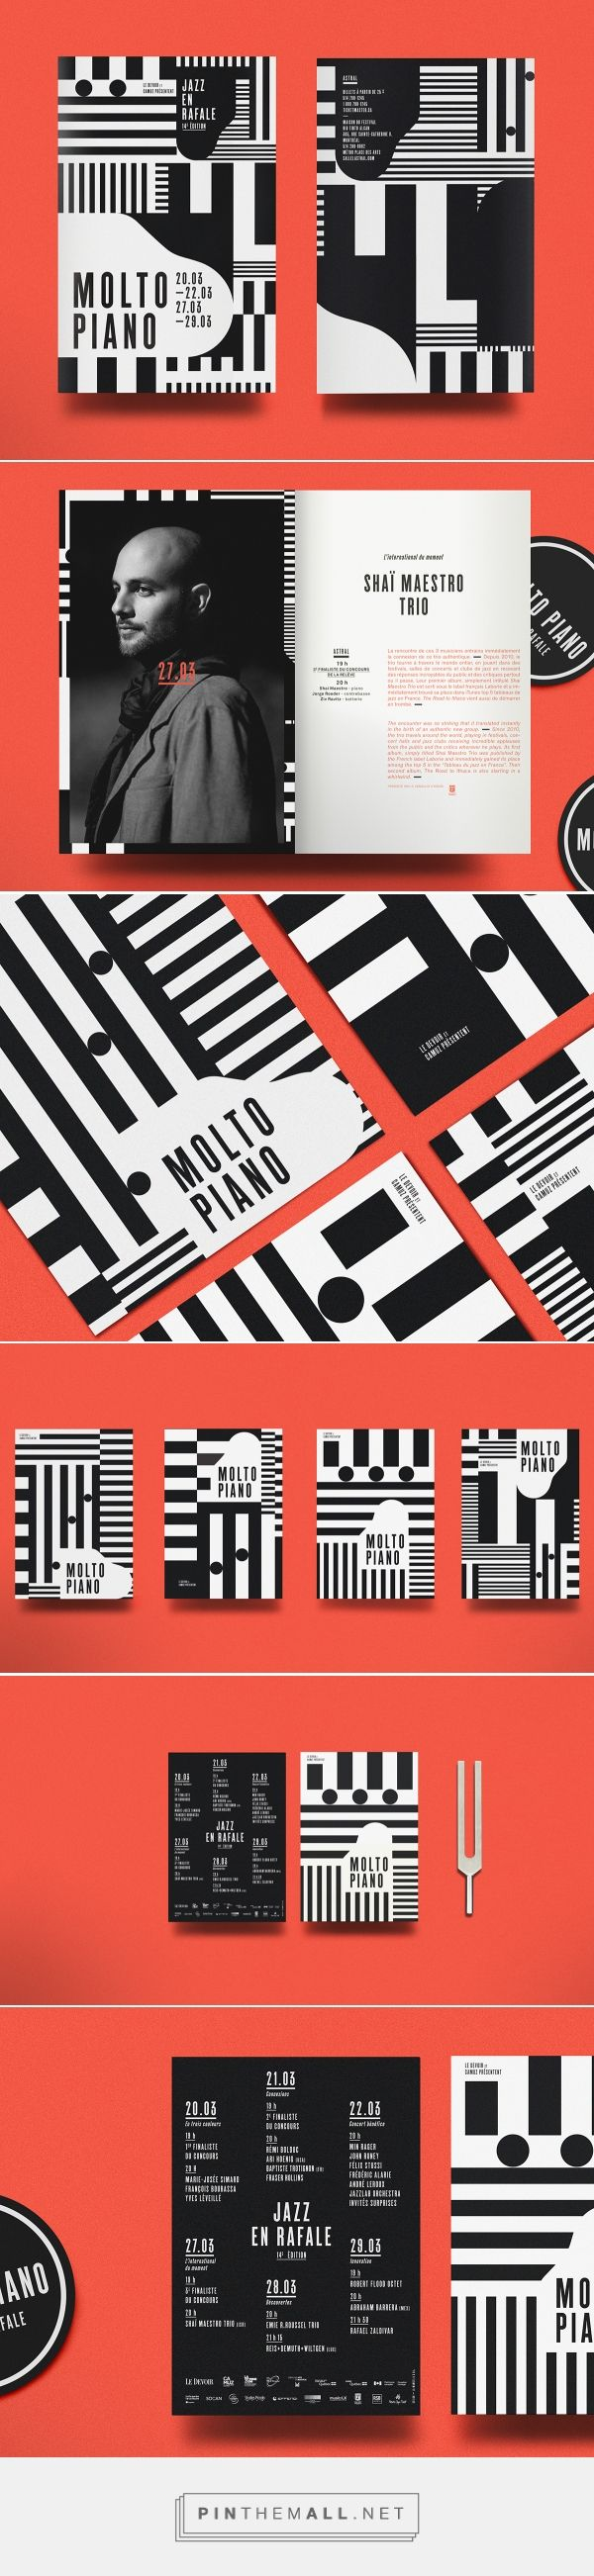 MOLTO PIANO - Jazz en rafale 2014 on Behance | Fivestar Branding – Design and Branding Agency & Inspiration Gallery